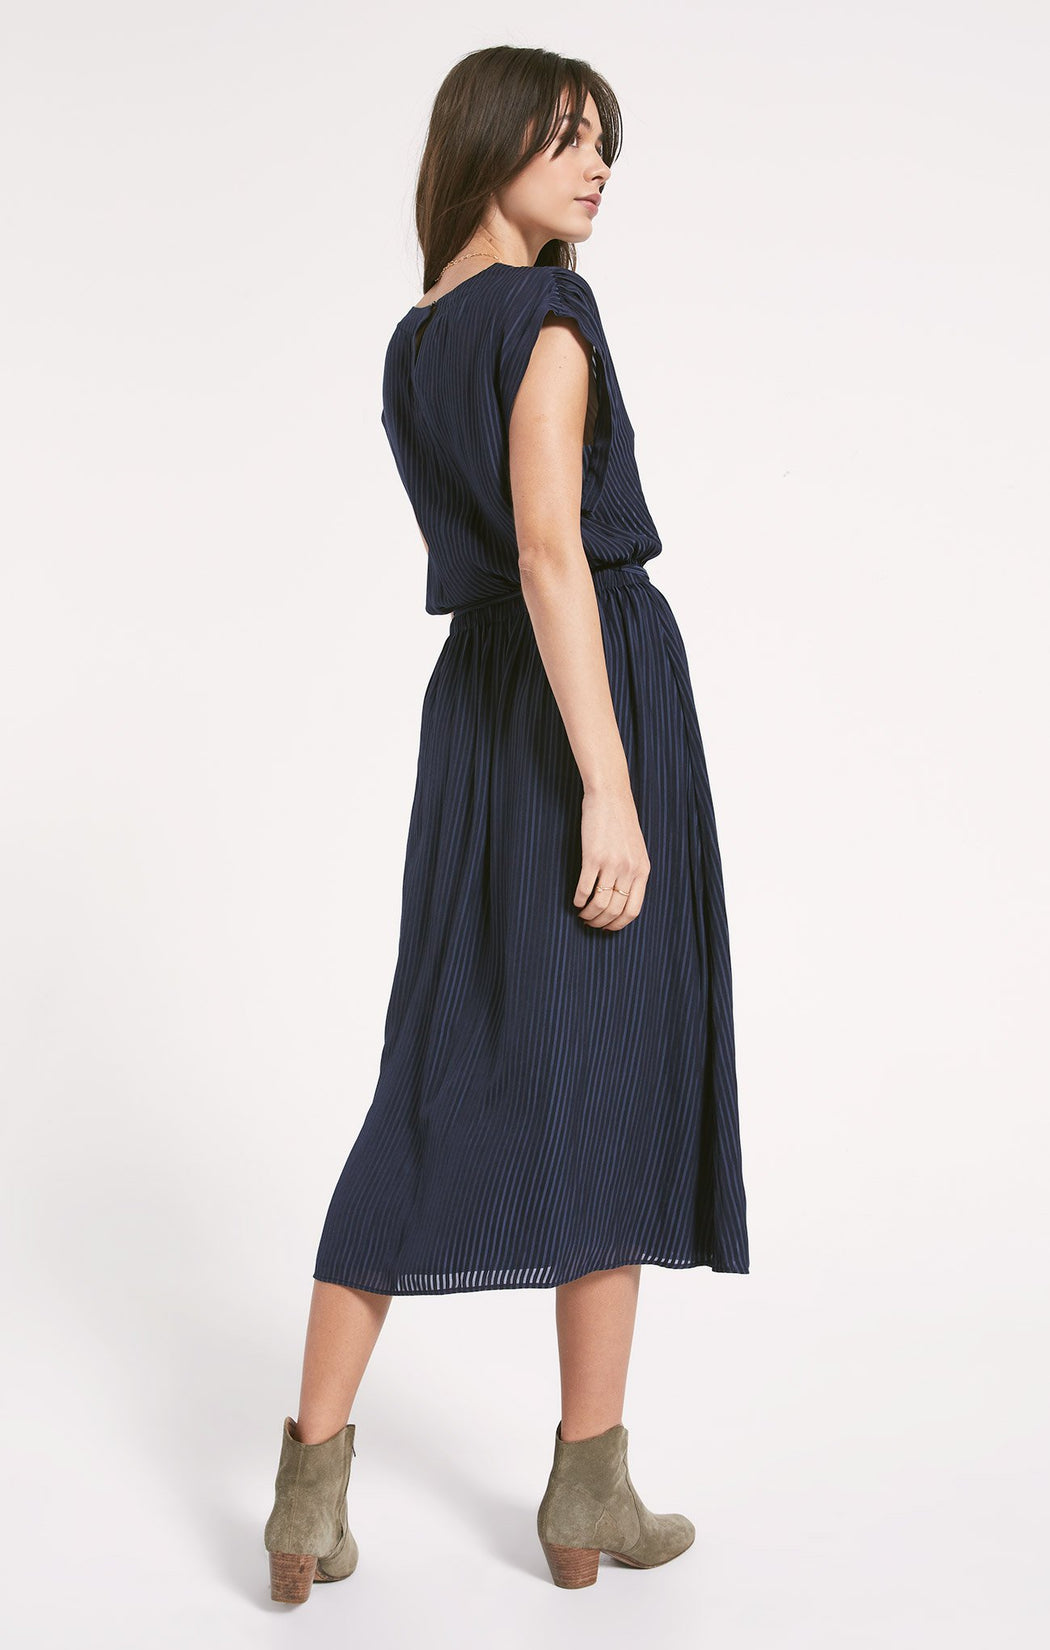 This flowy, relaxed surplice midi dress is made from a soft and lightweight polyester knit fabric. The Chalet Dress features a faux wrap top with a v-neck design and keyhole style button closure at the back. The full skirt has shirring along the elastic waistband, with a belt that ties at the front. Wear this comfortable dress with boots and a statement jacket for an instant fall favorite.